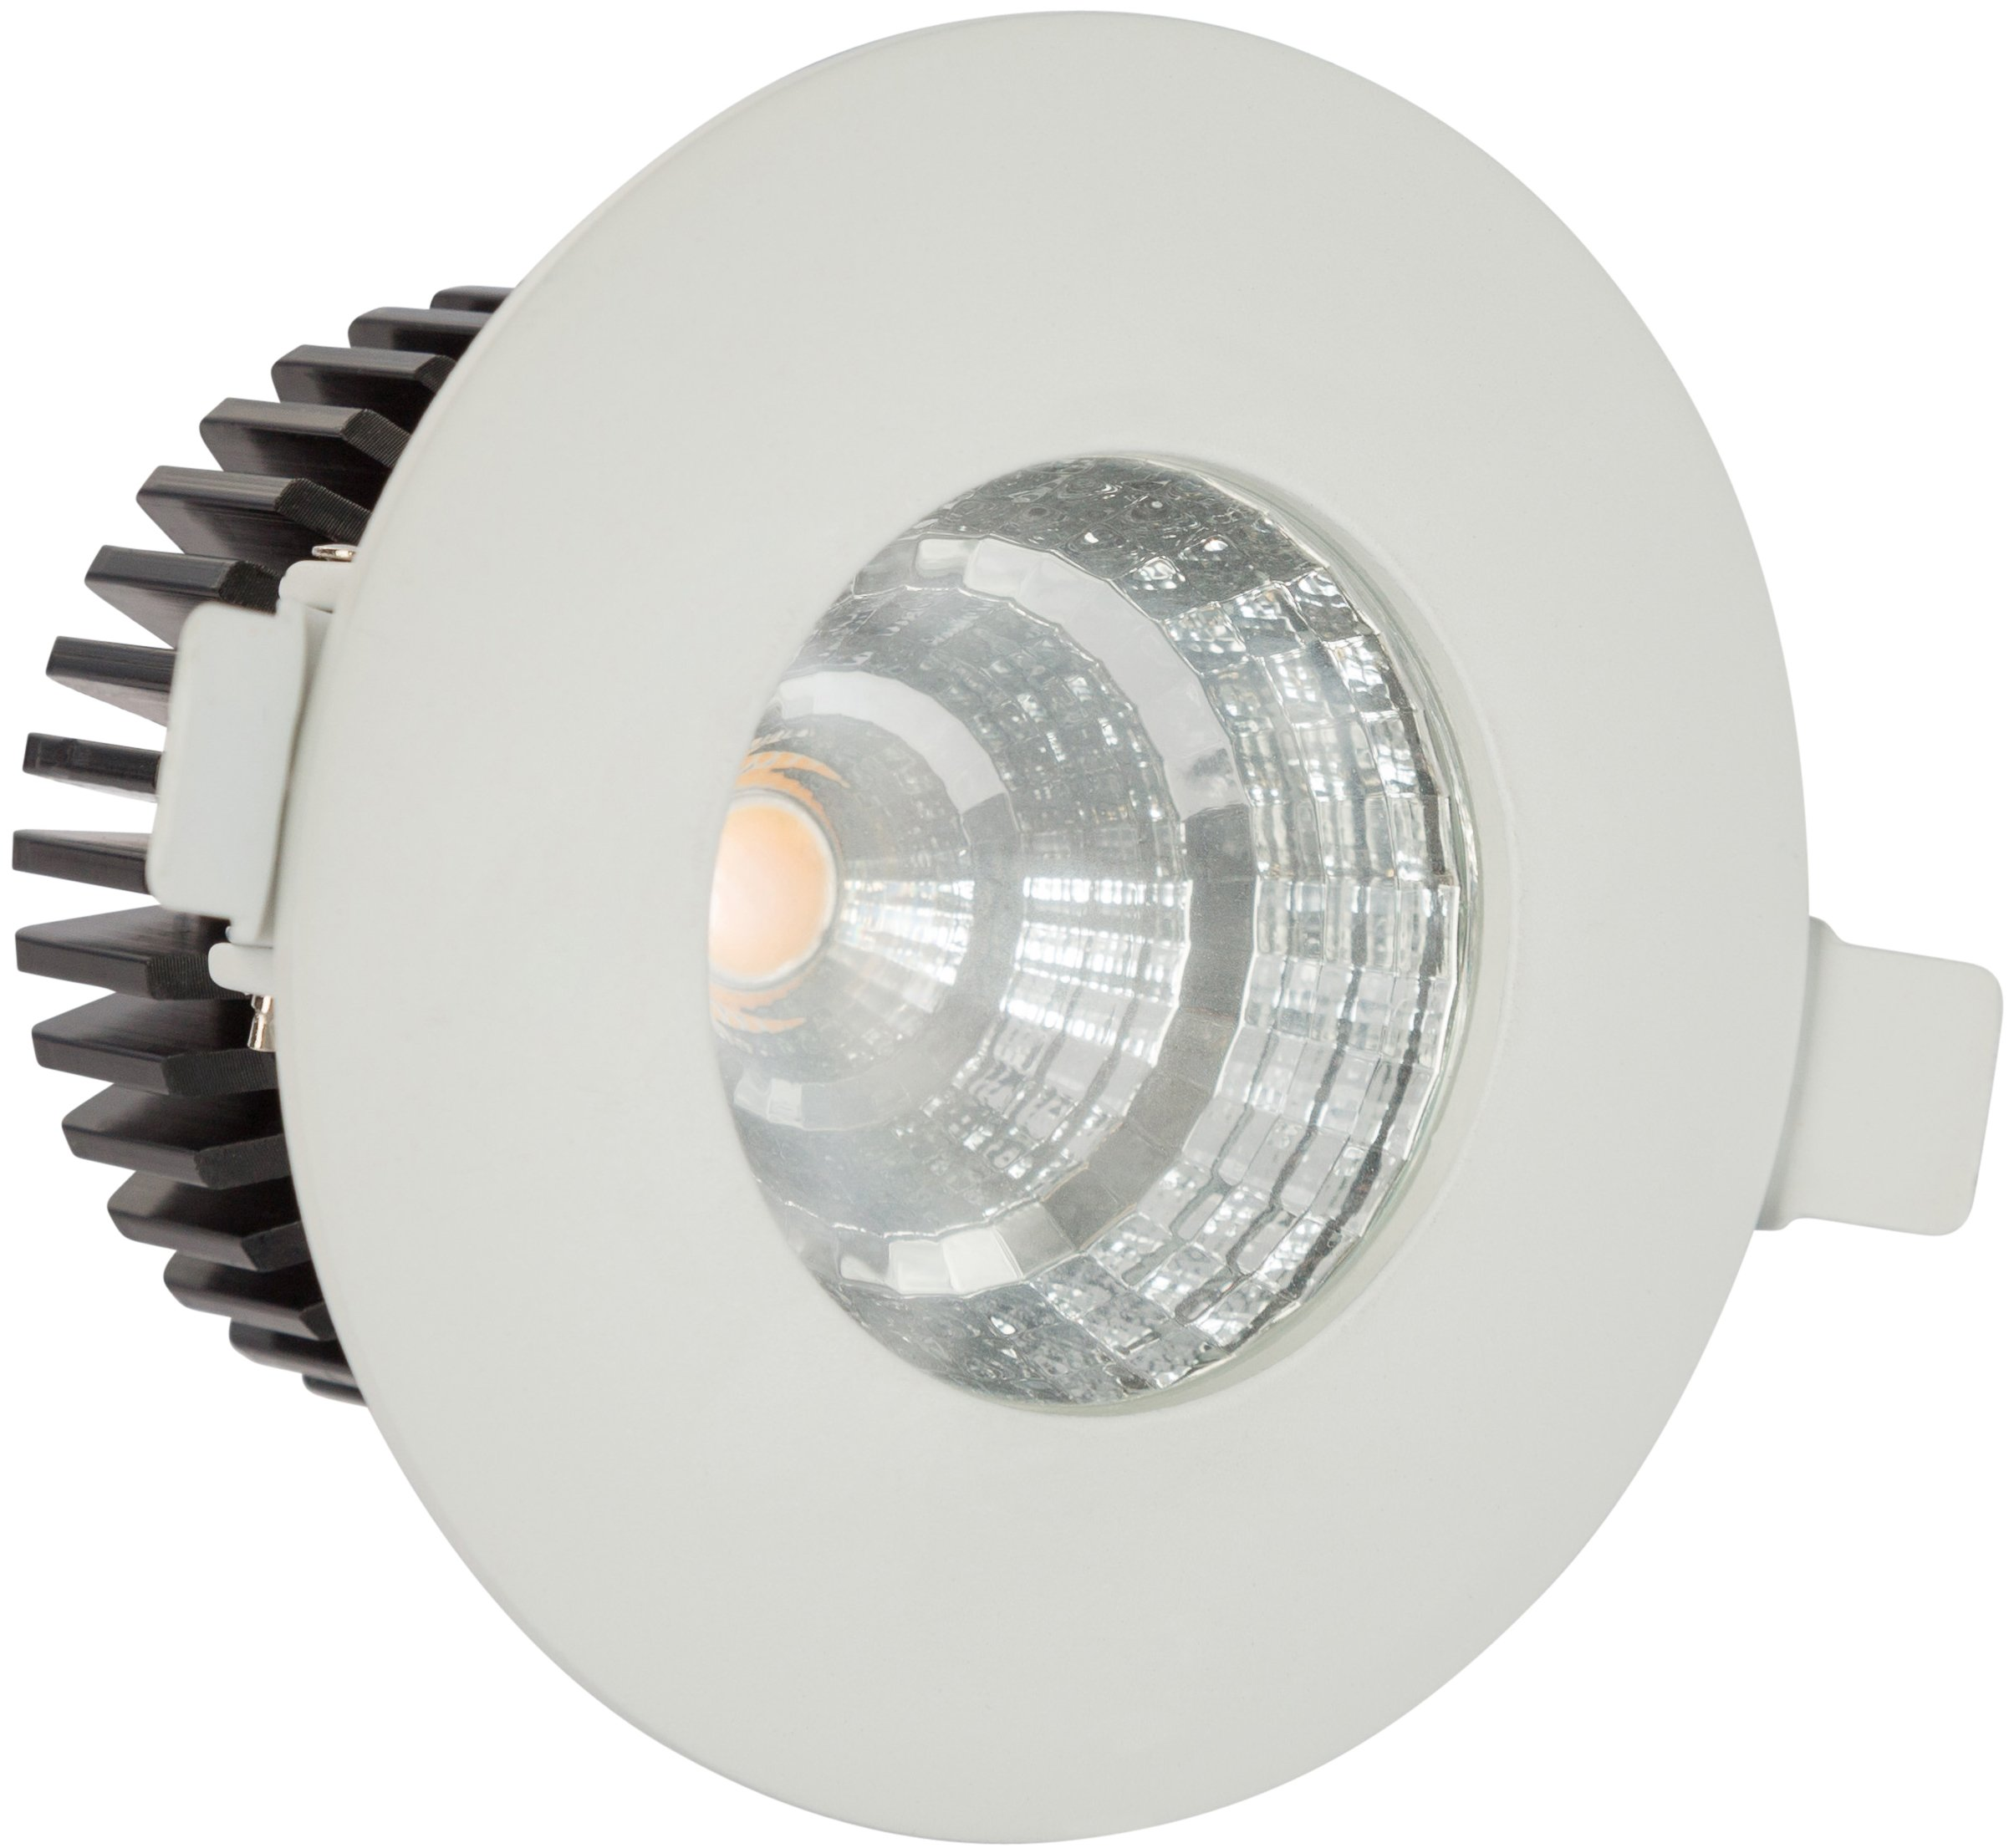 LB11337 3-Inch LED Downlight, COB LED Recessed Light Fixture, With LED driver, 6W (50W Equivalent), 4000K Daylight, 420 Lumens, IP65 Waterproof - UL Listed